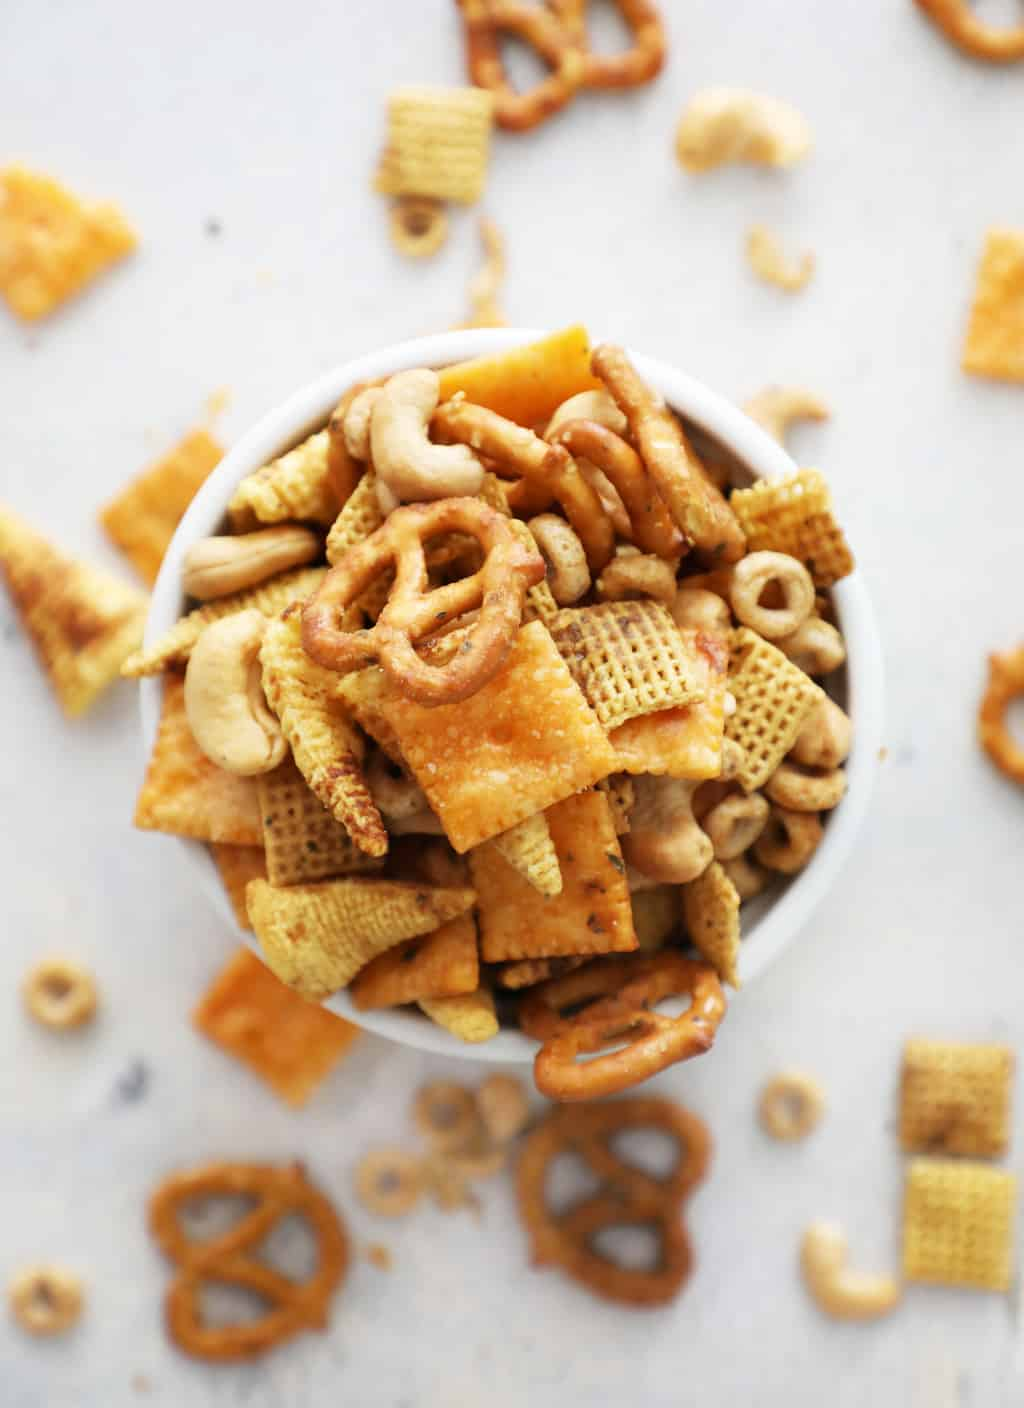 birds eye view of Chex mix ranch flavor on white countertop